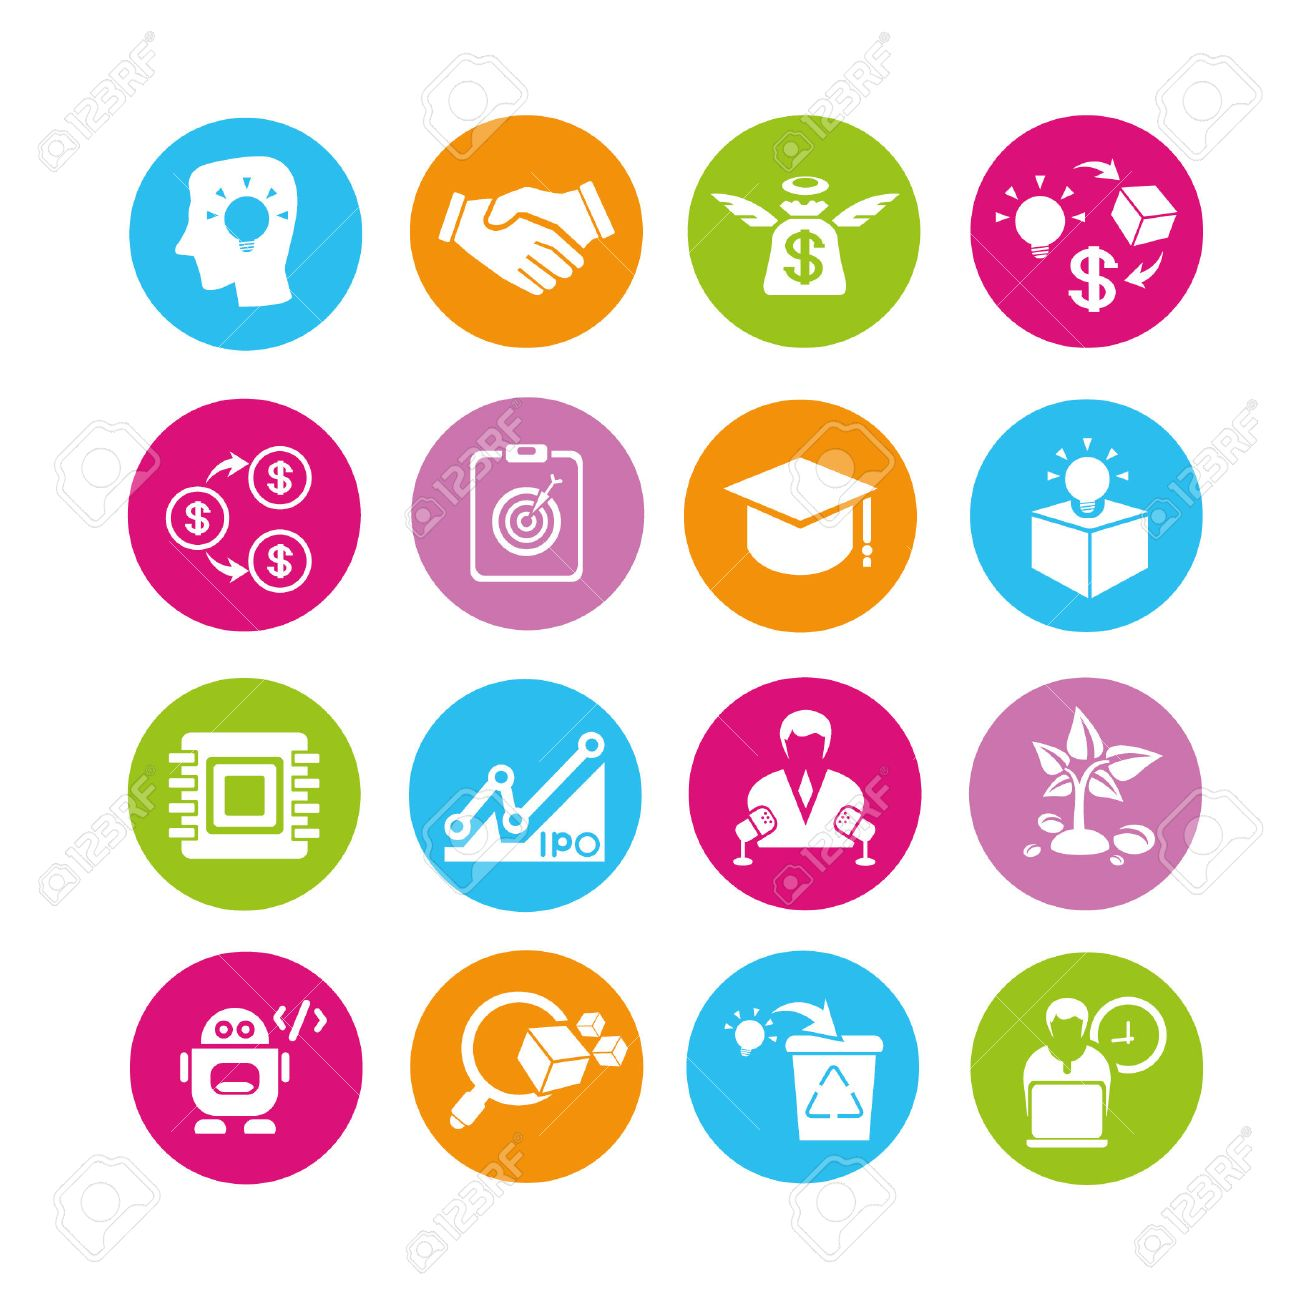 startup and entrepreneur icons set, buttons - 22321887